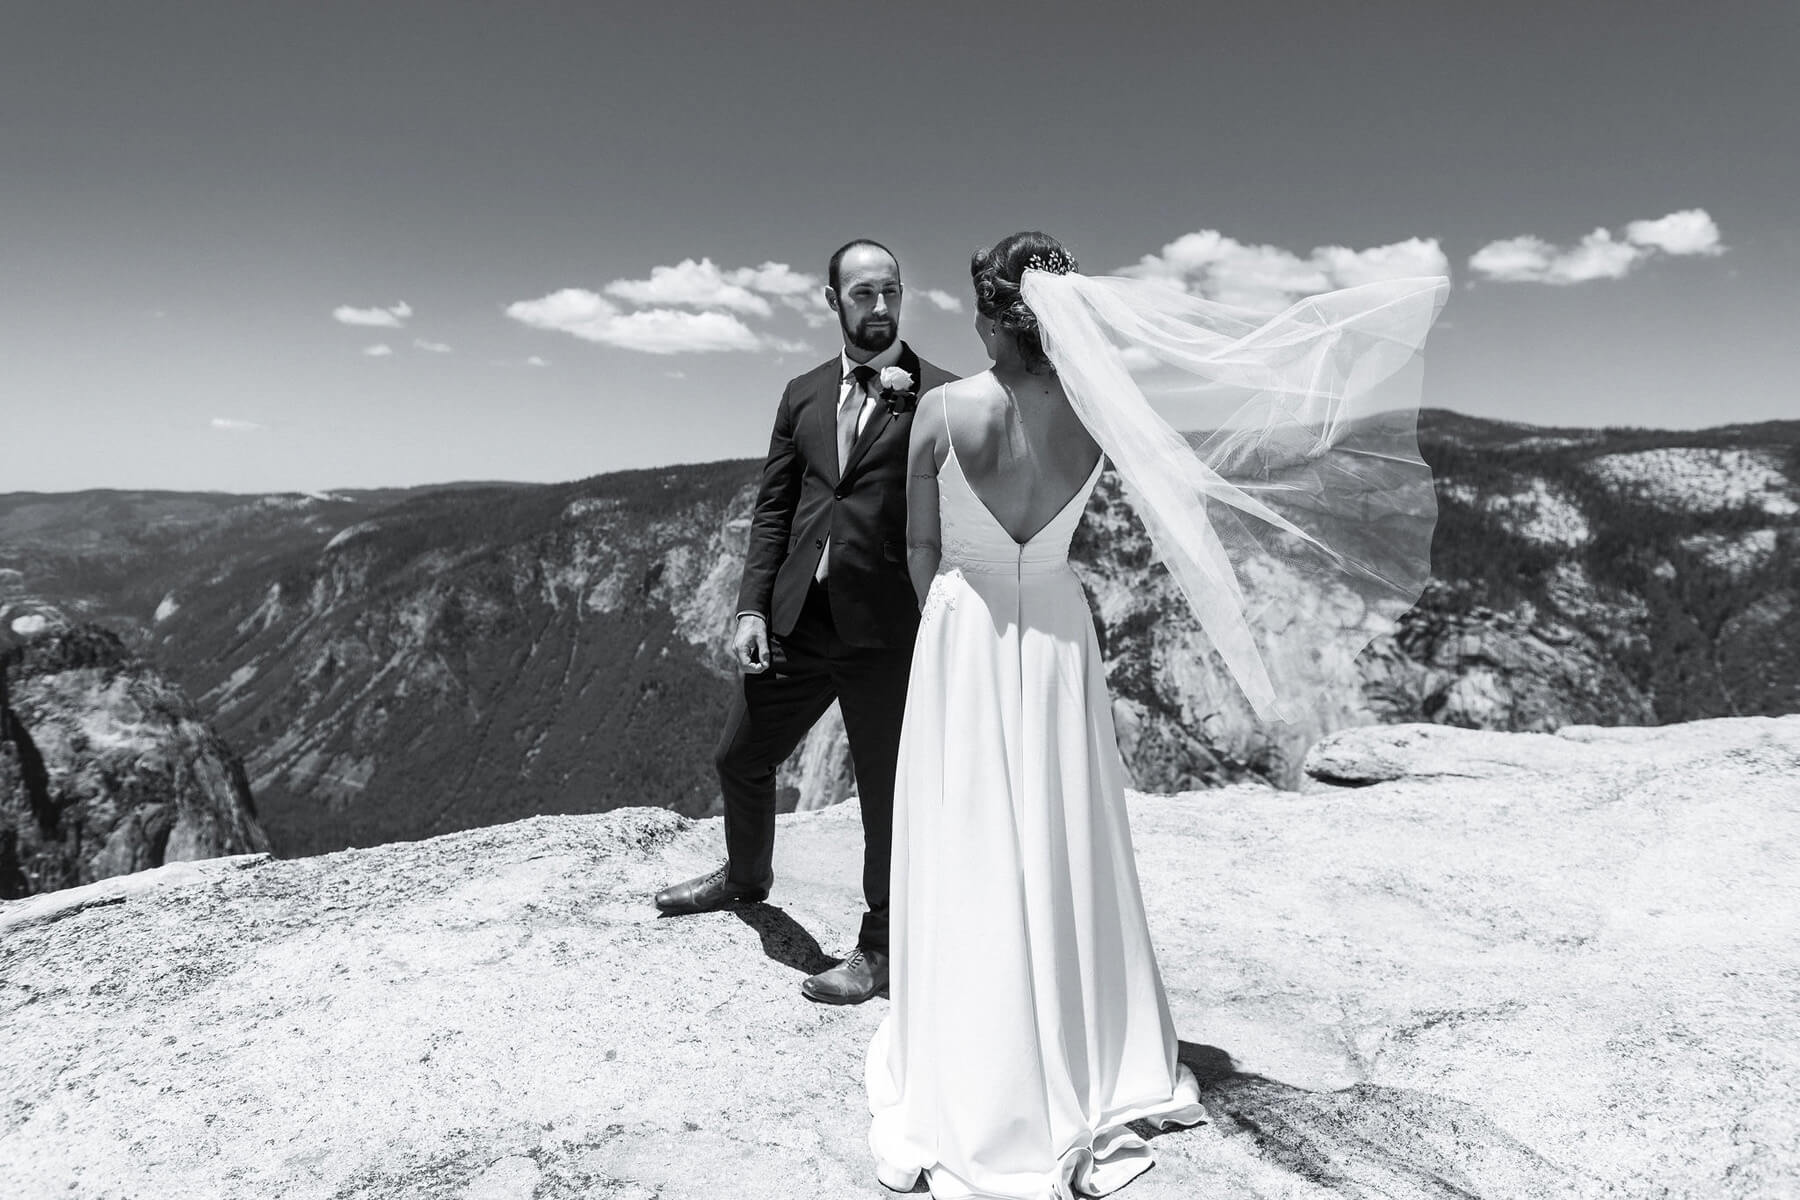 groom looking at bride with veil swirling in wind taft point elopement